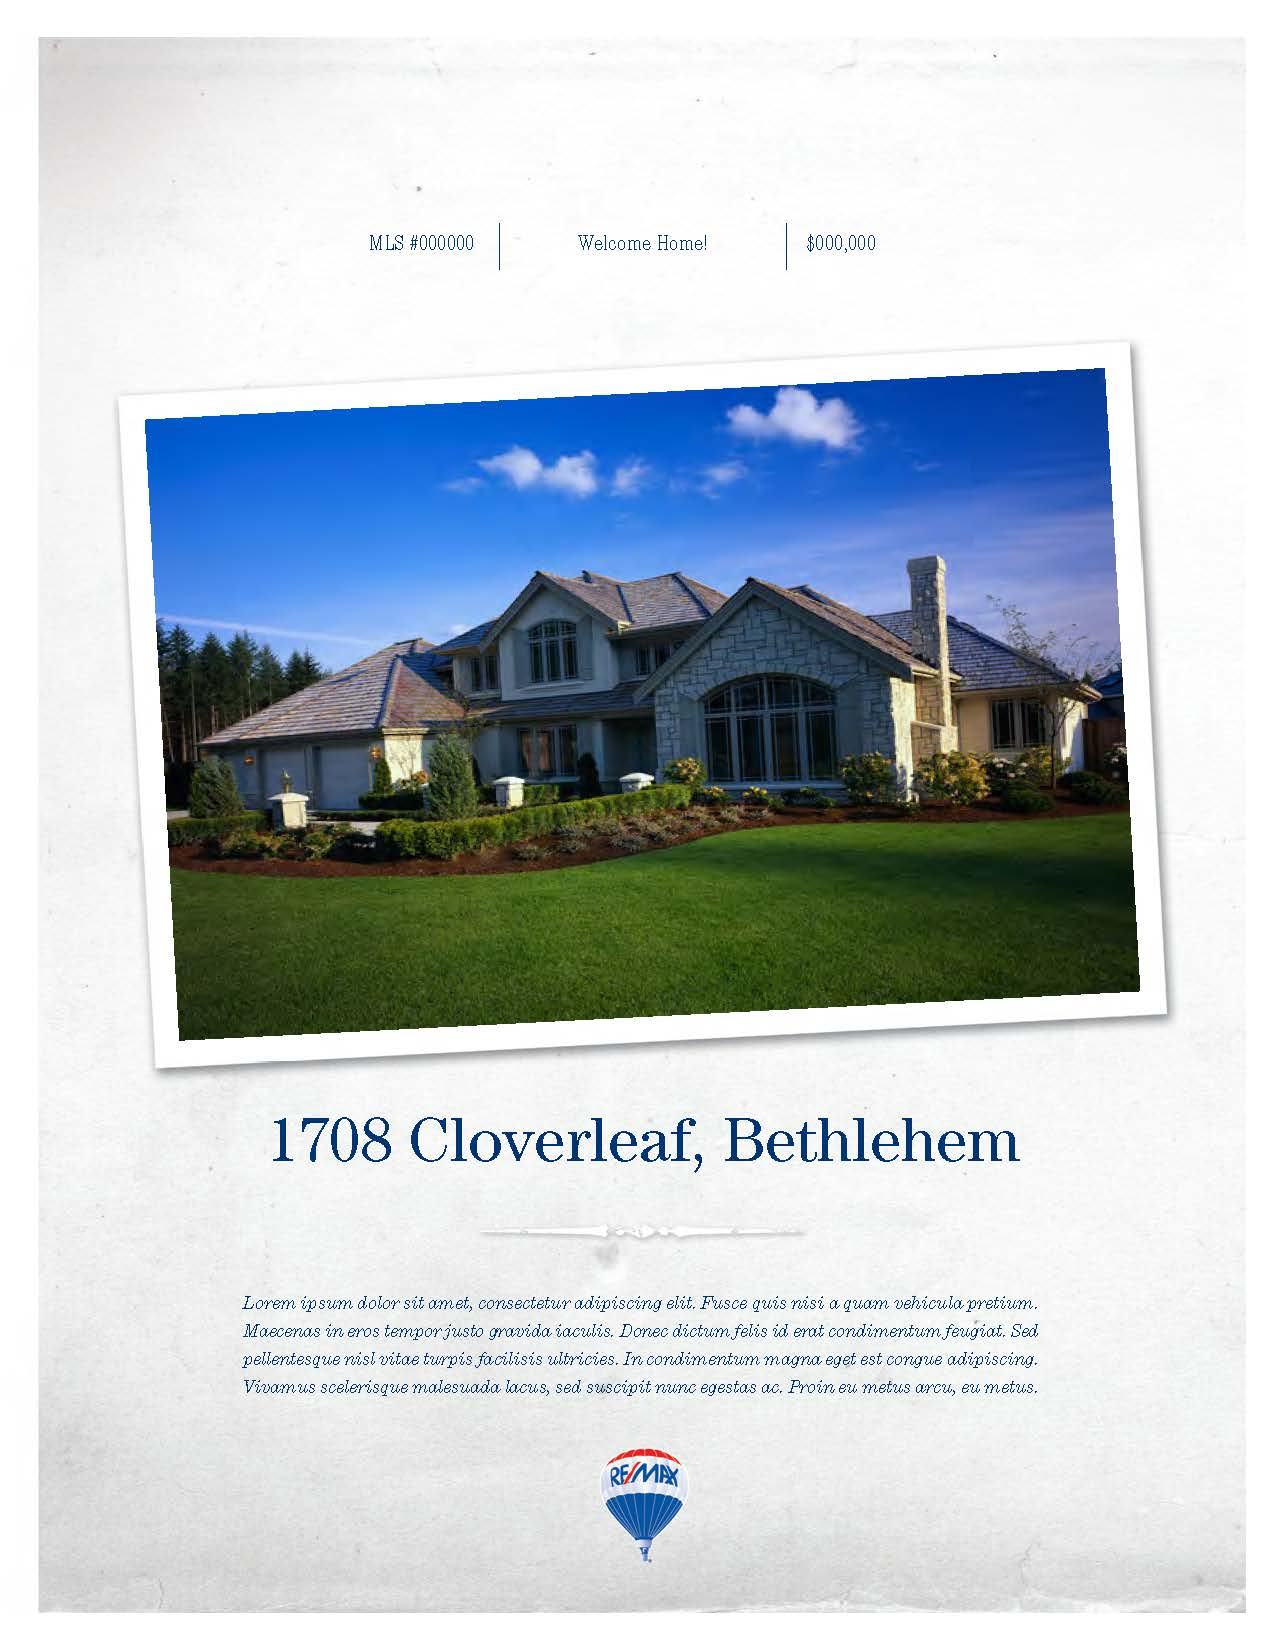 Marketing Samples Feature Sheet RE MAX Real Estate